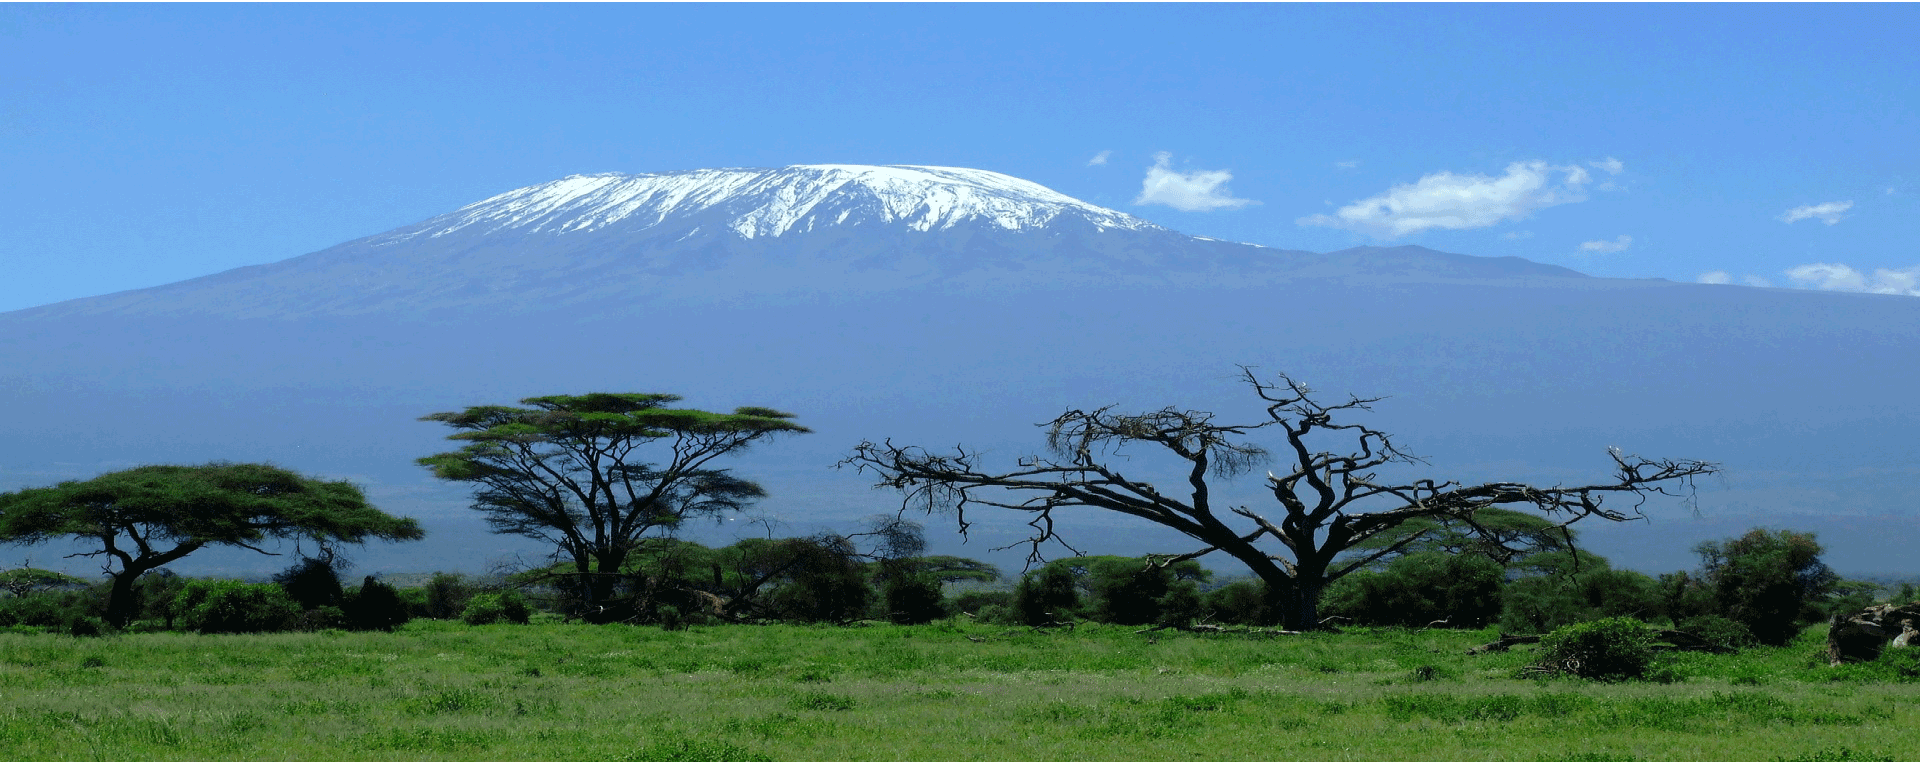 Kilimanjaro Via Machame  Route (7 Days and 6 Nights)